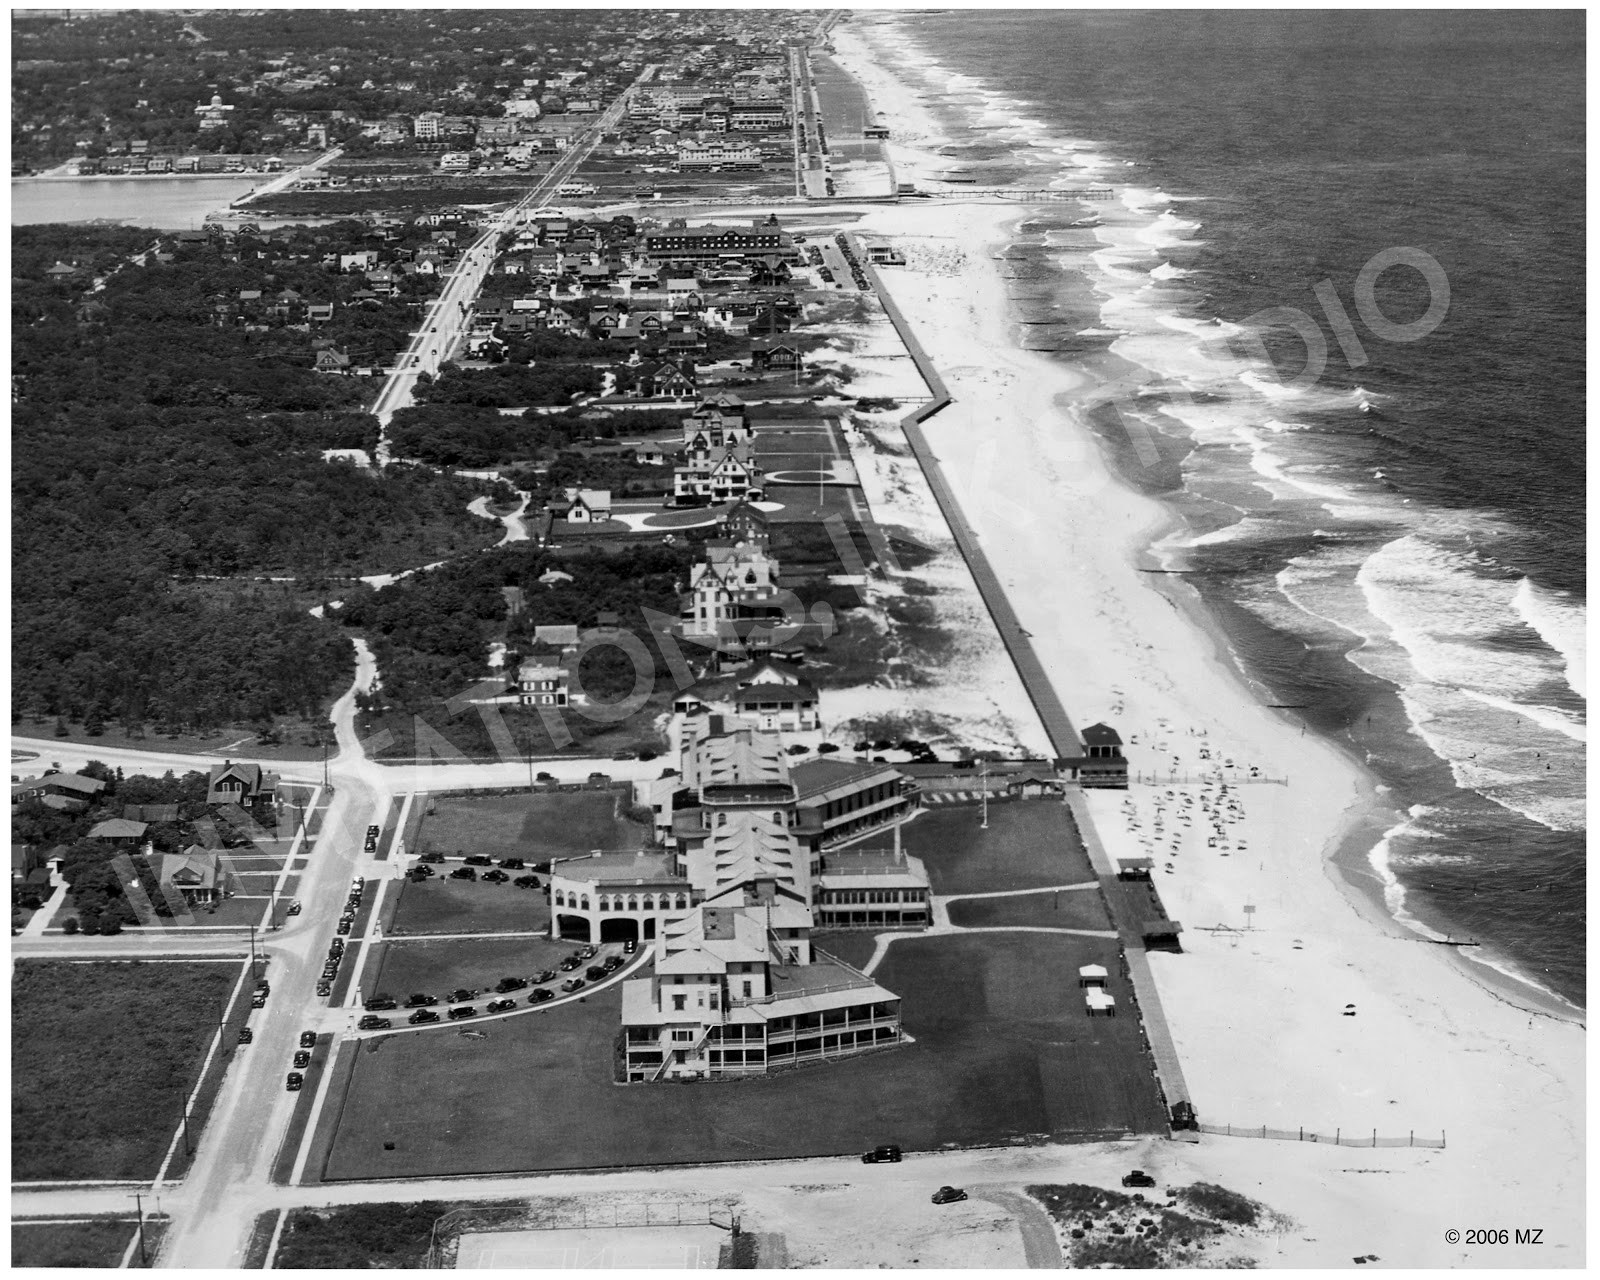 Sea Girt New Jersey C 1932 The Large Building In Lower Center Of Photograph Is Stockton Hotel It Was Destroyed By Fire 1965